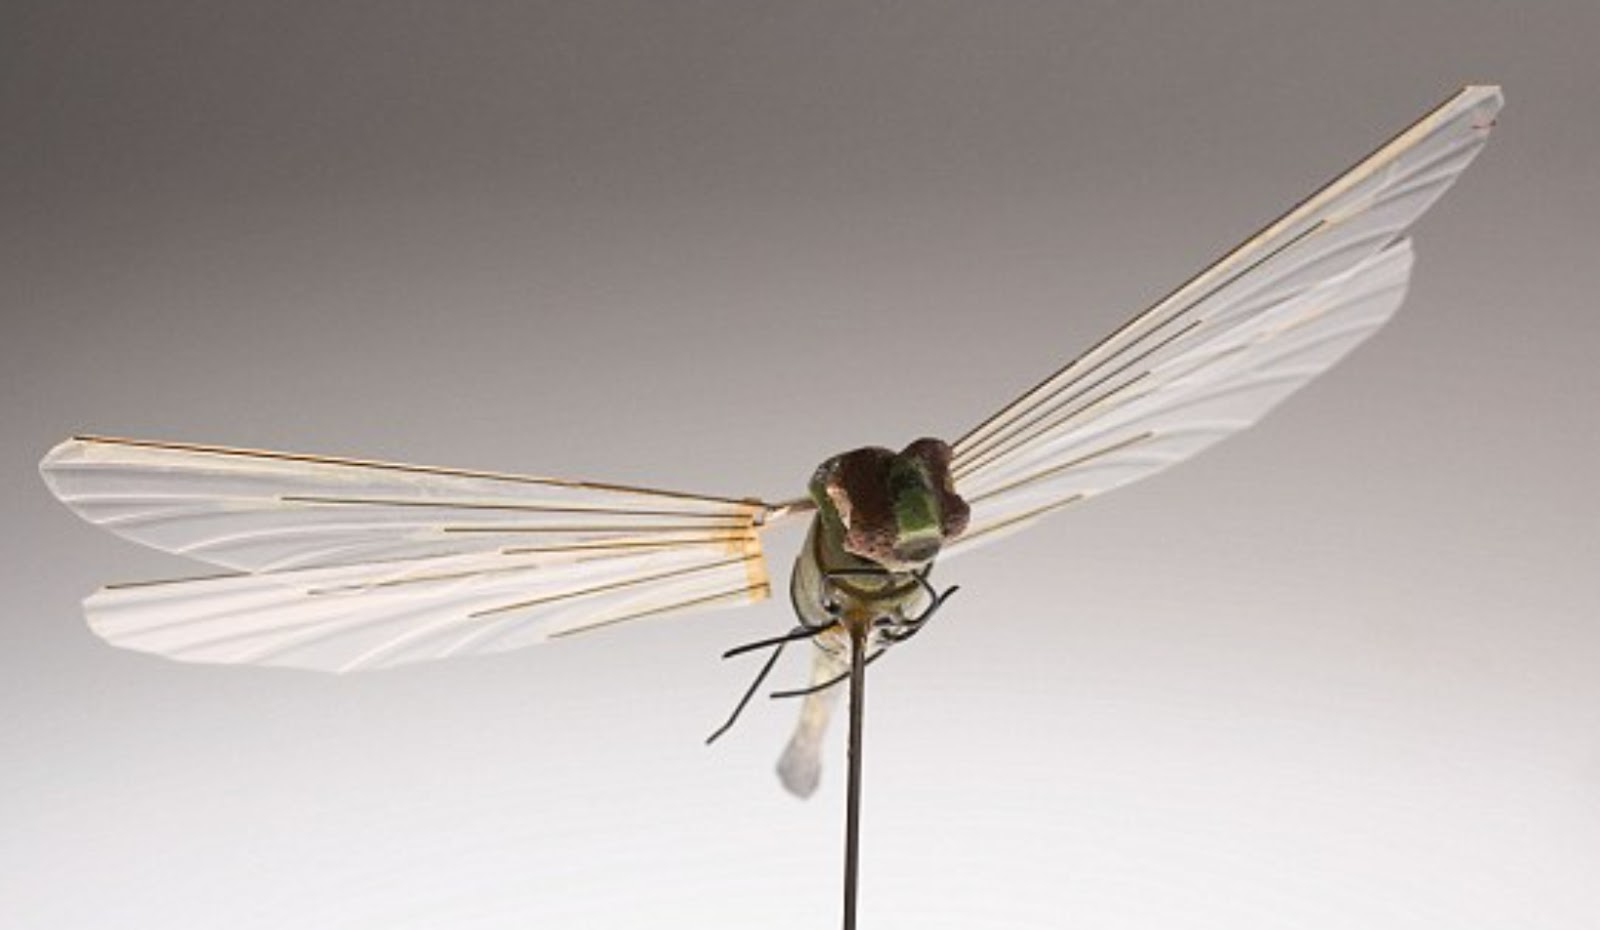 An 'insectothopter' drone